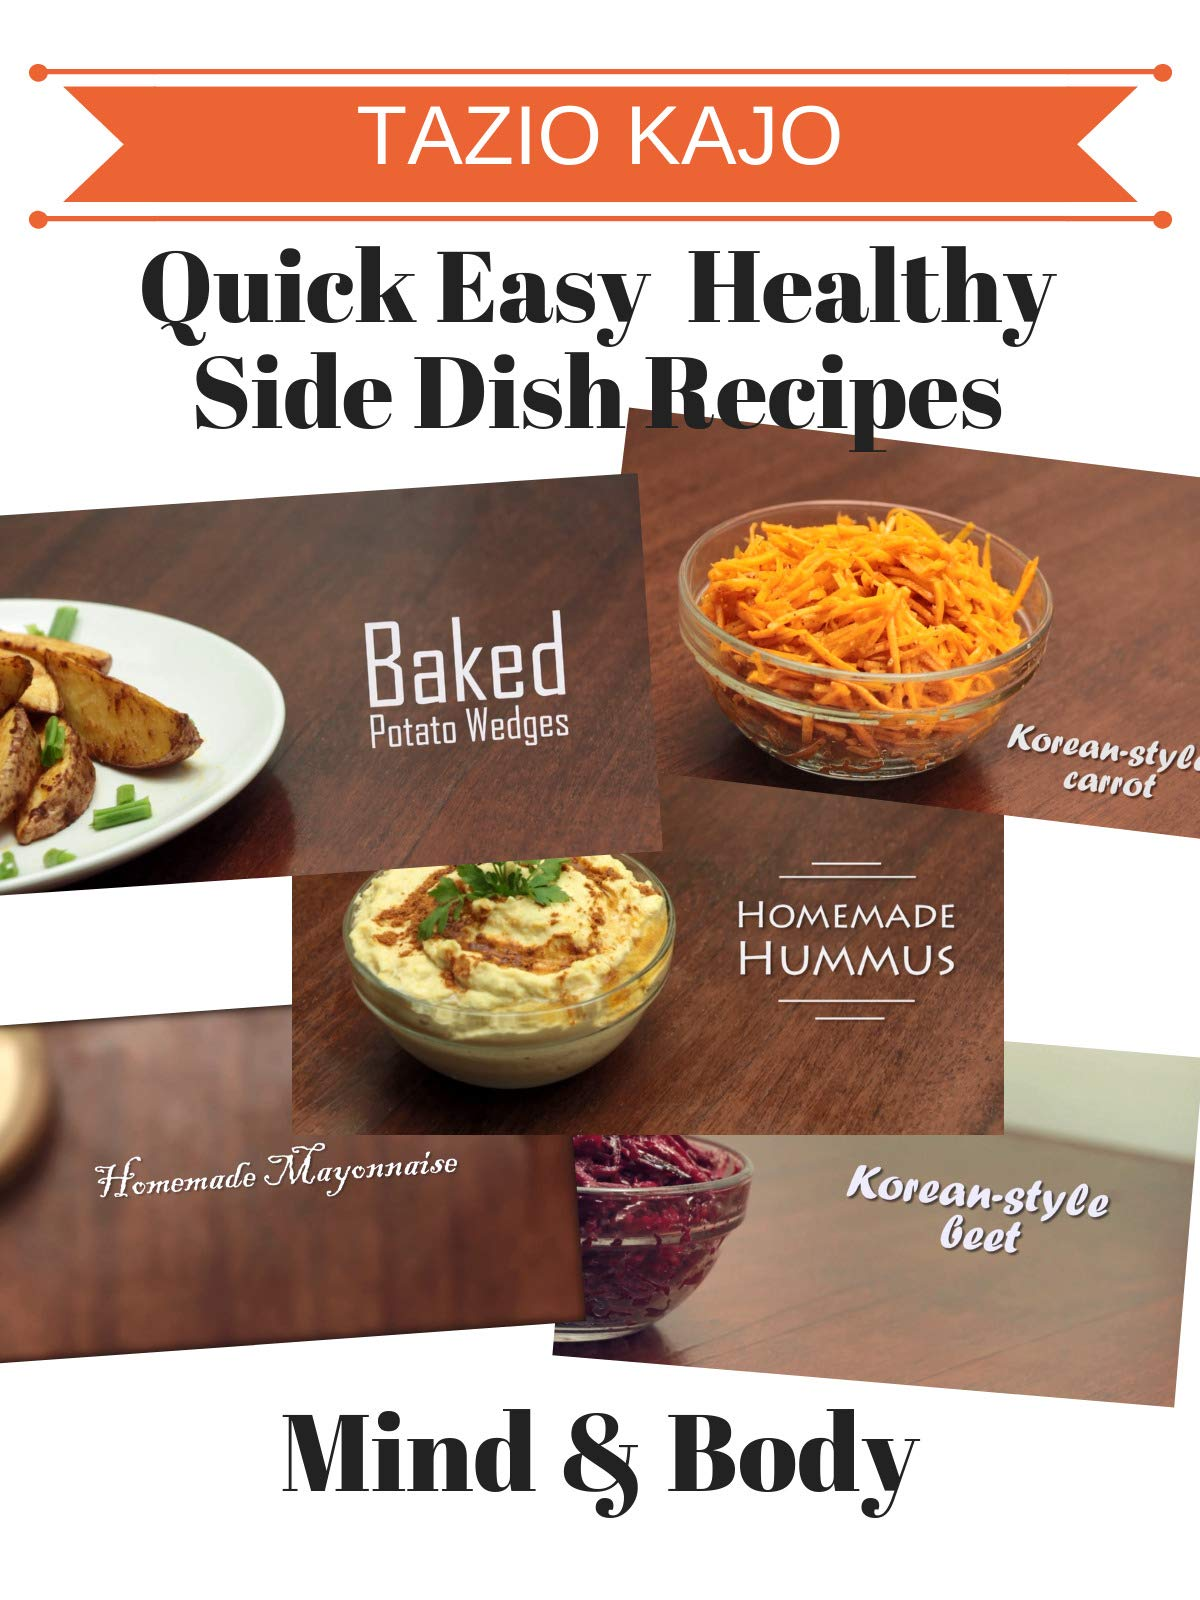 Quick Easy & Healthy Side Dish Recipes